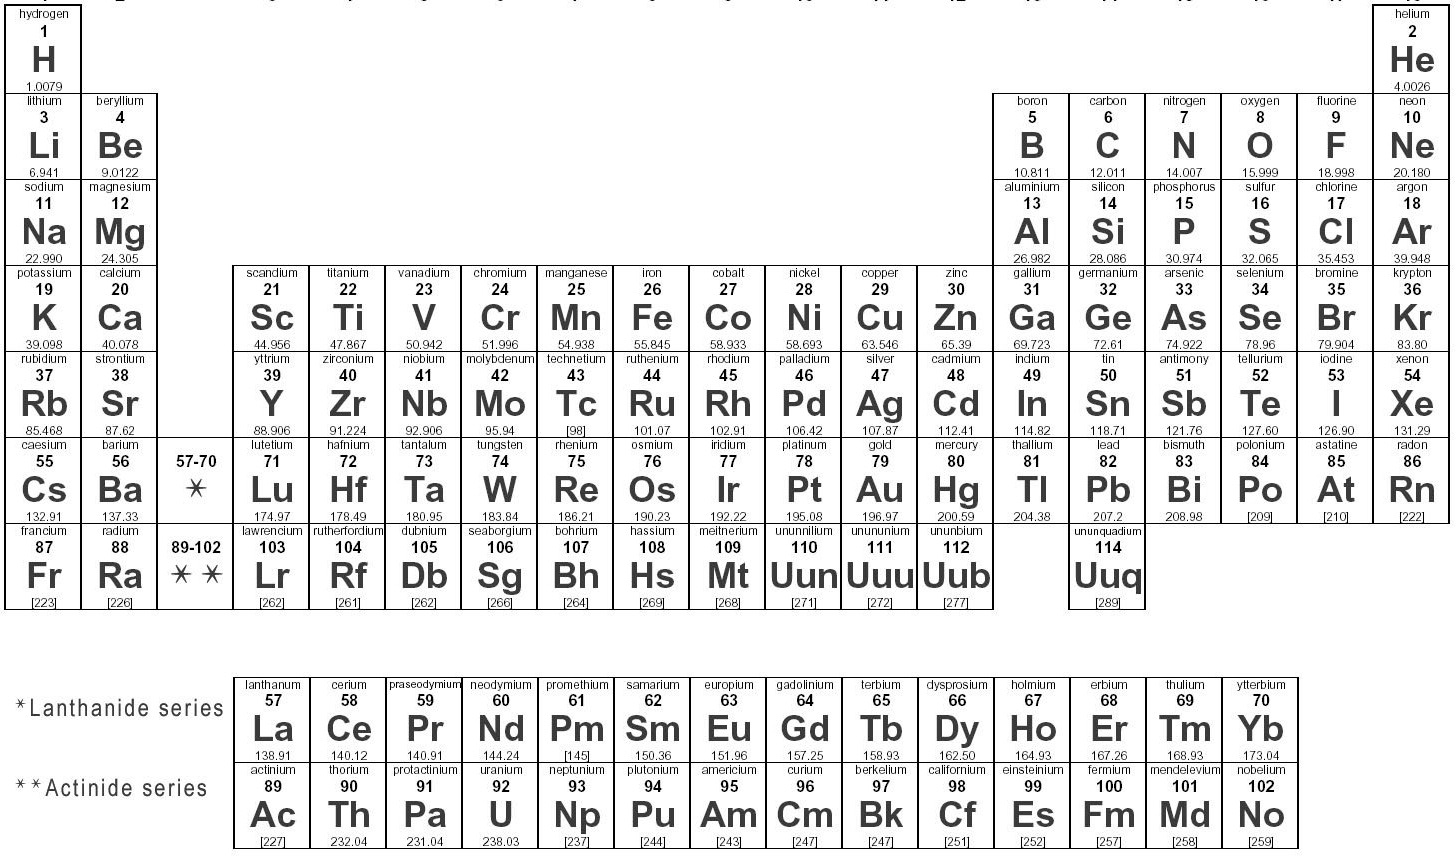 Elements compounds mixtures and the periodic table science portfolio these come from various foods that we consume in our everyday lives here is a picture of the periodic table which contains 110 elements urtaz Choice Image